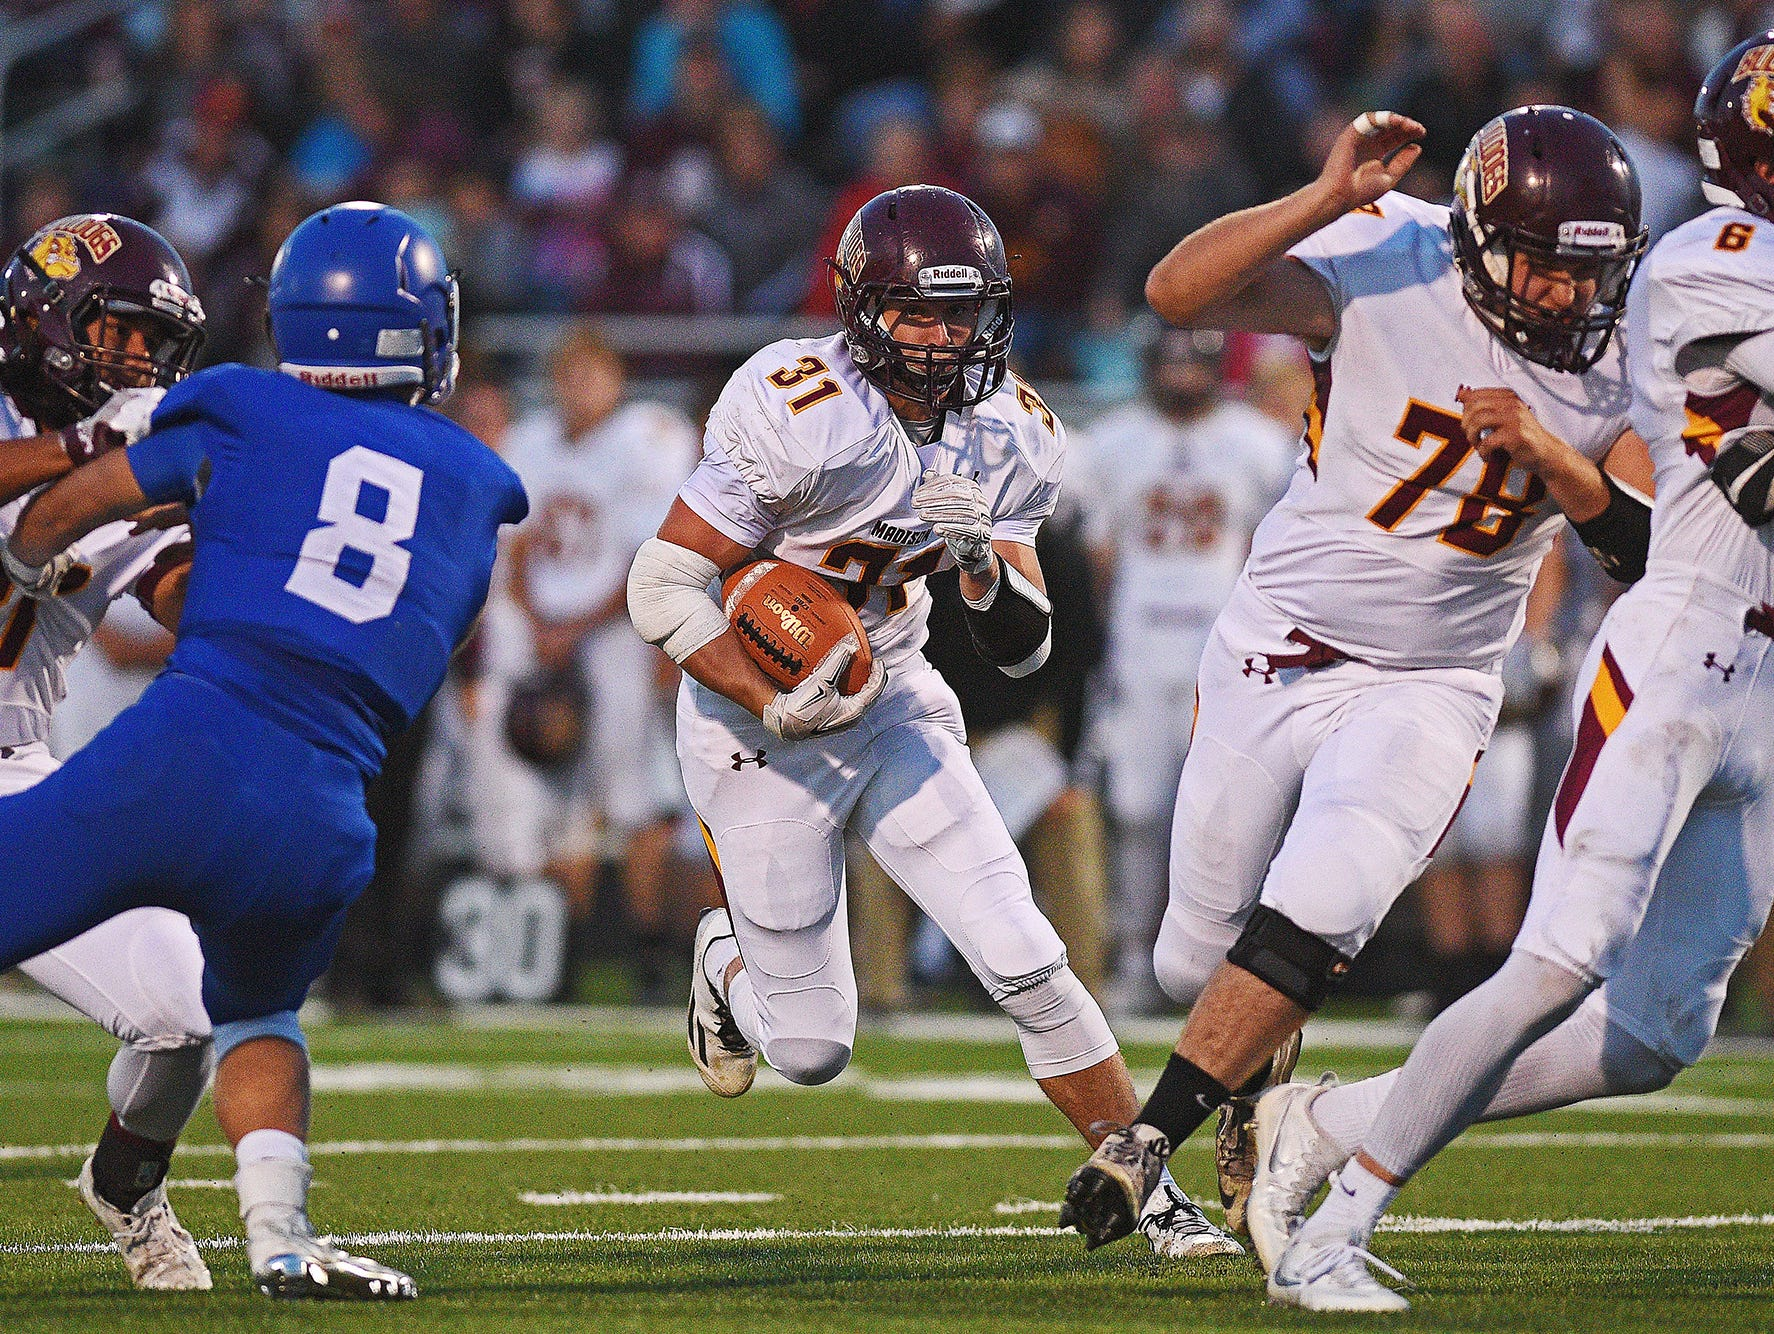 Madison's Riley Janke (31) rushes with the ball during a game against Sioux Falls Christian Friday, Sept. 30, 2016, at Bob Young Field in Sioux Falls.